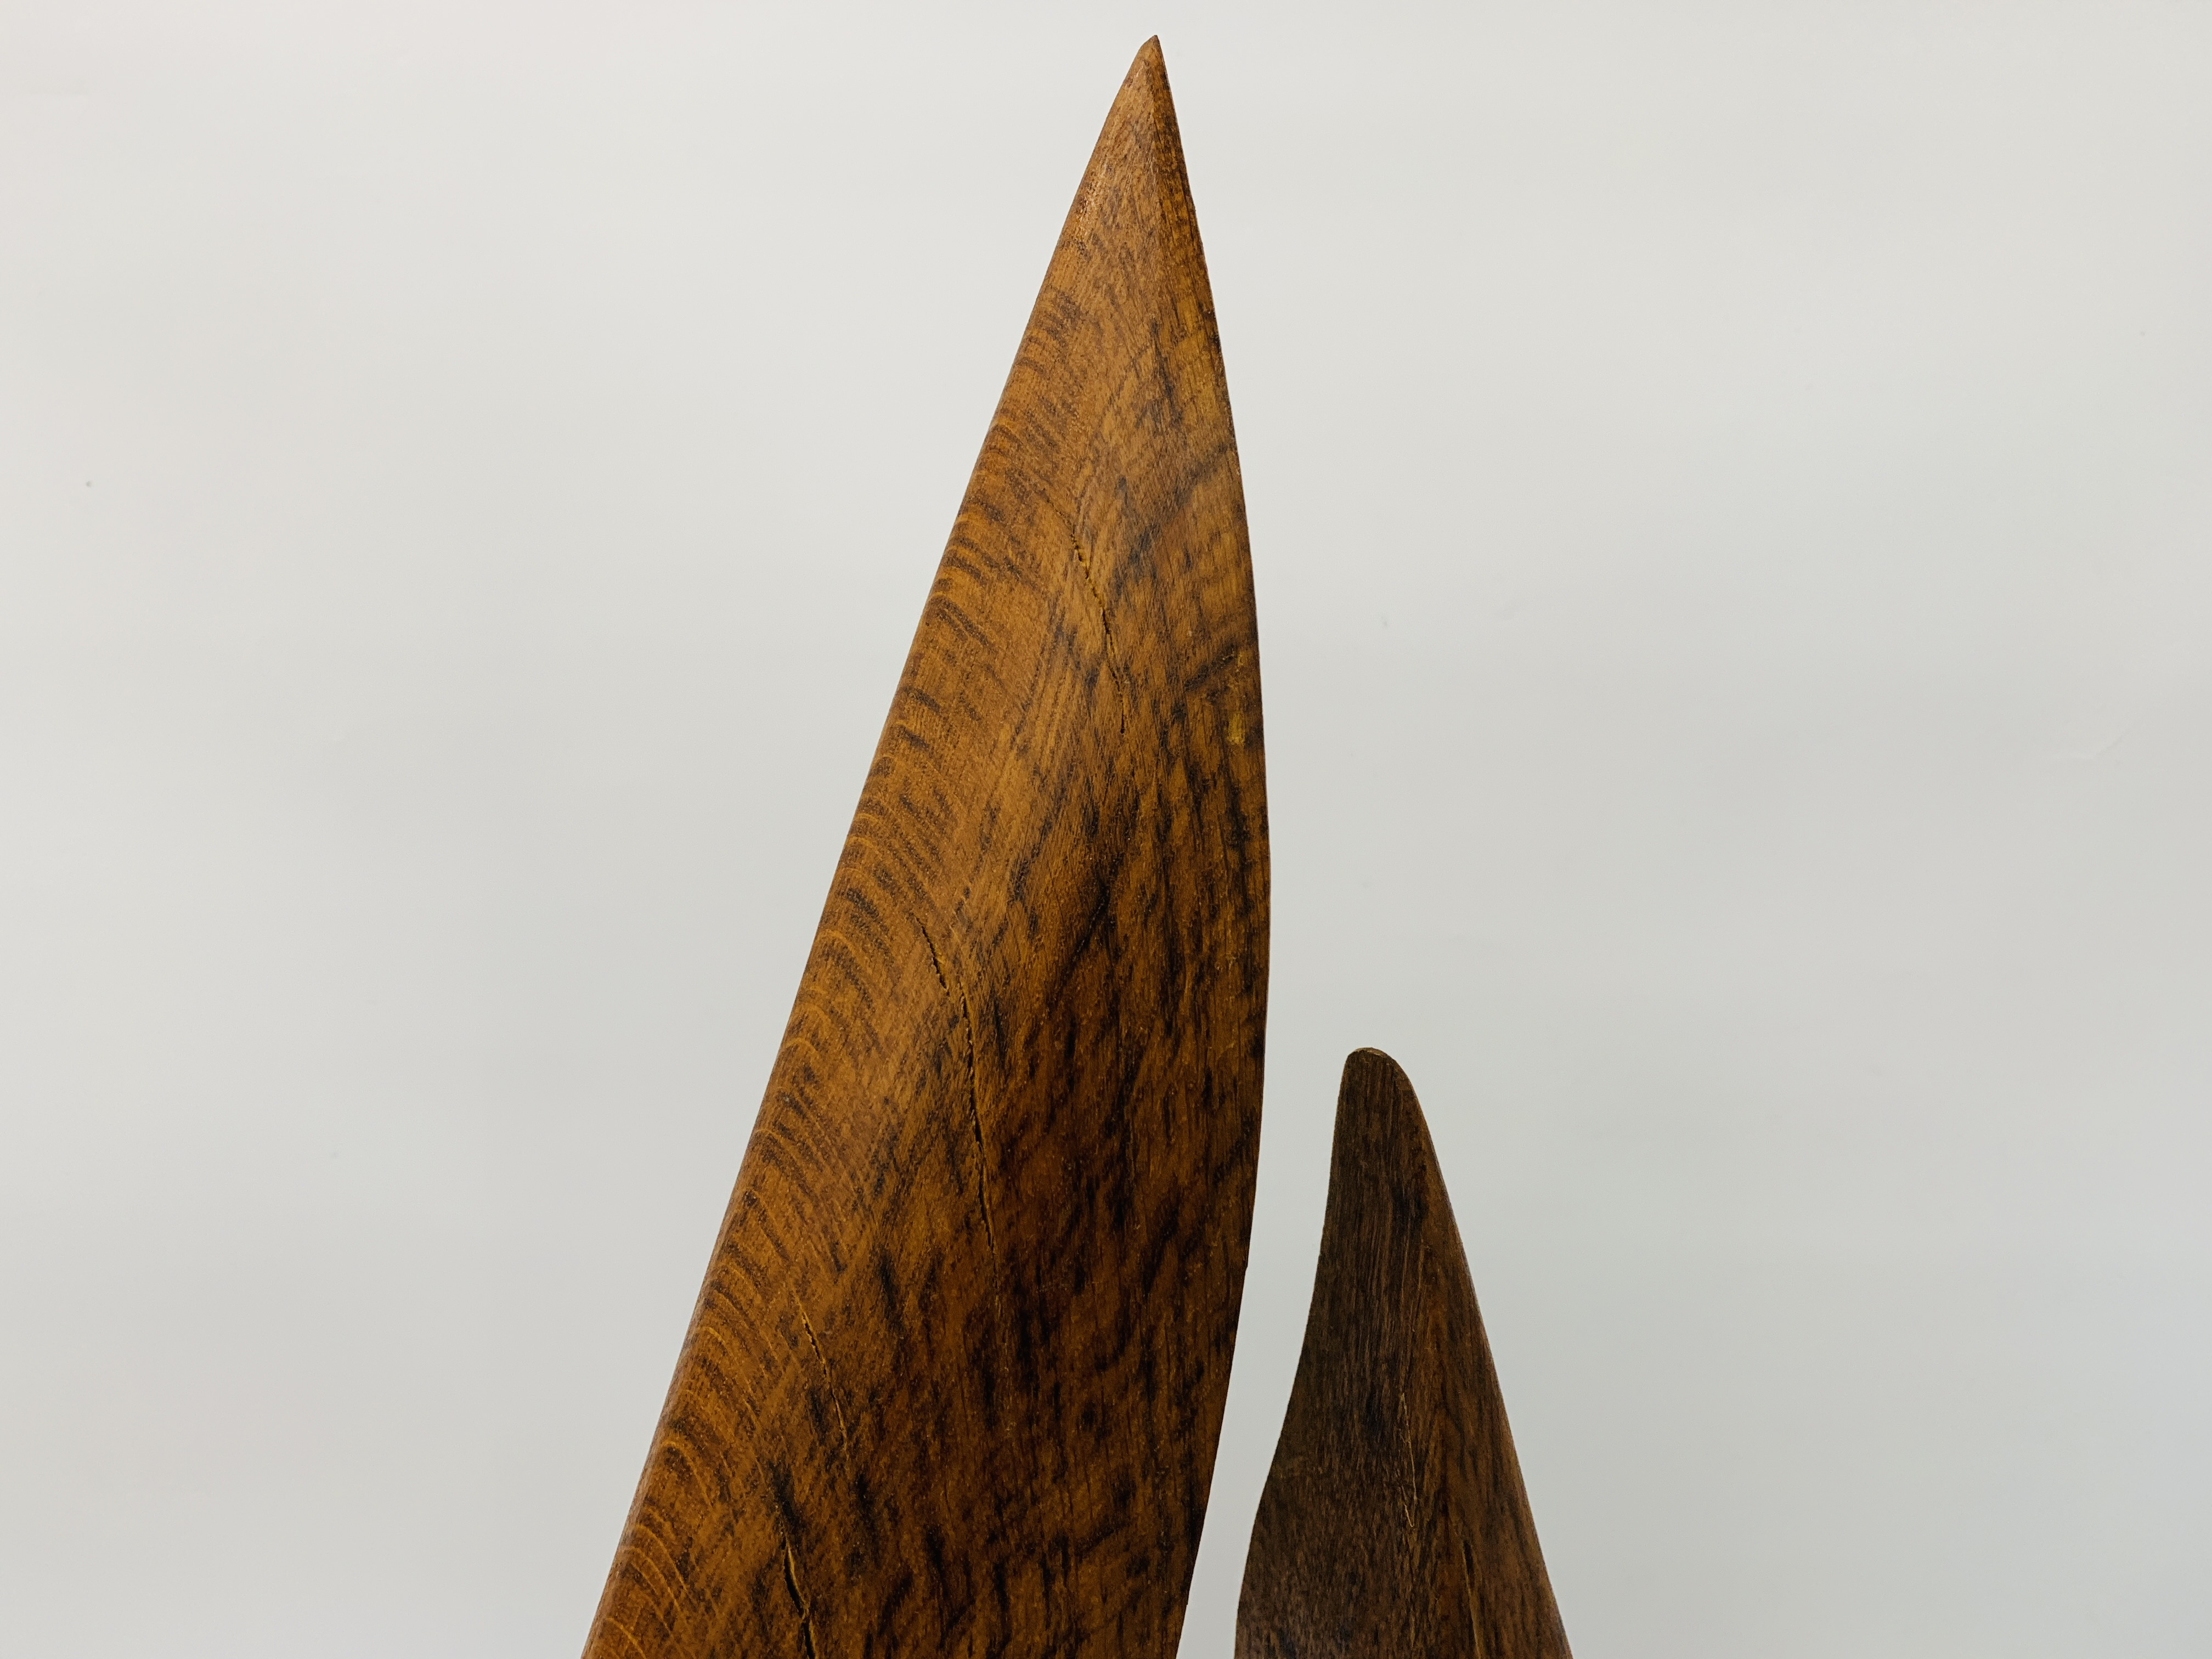 """AN OAK ABSTRACT SCULPTURE OF """"U"""" SHAPED FORM - HEIGHT 83 CM. - Image 6 of 8"""